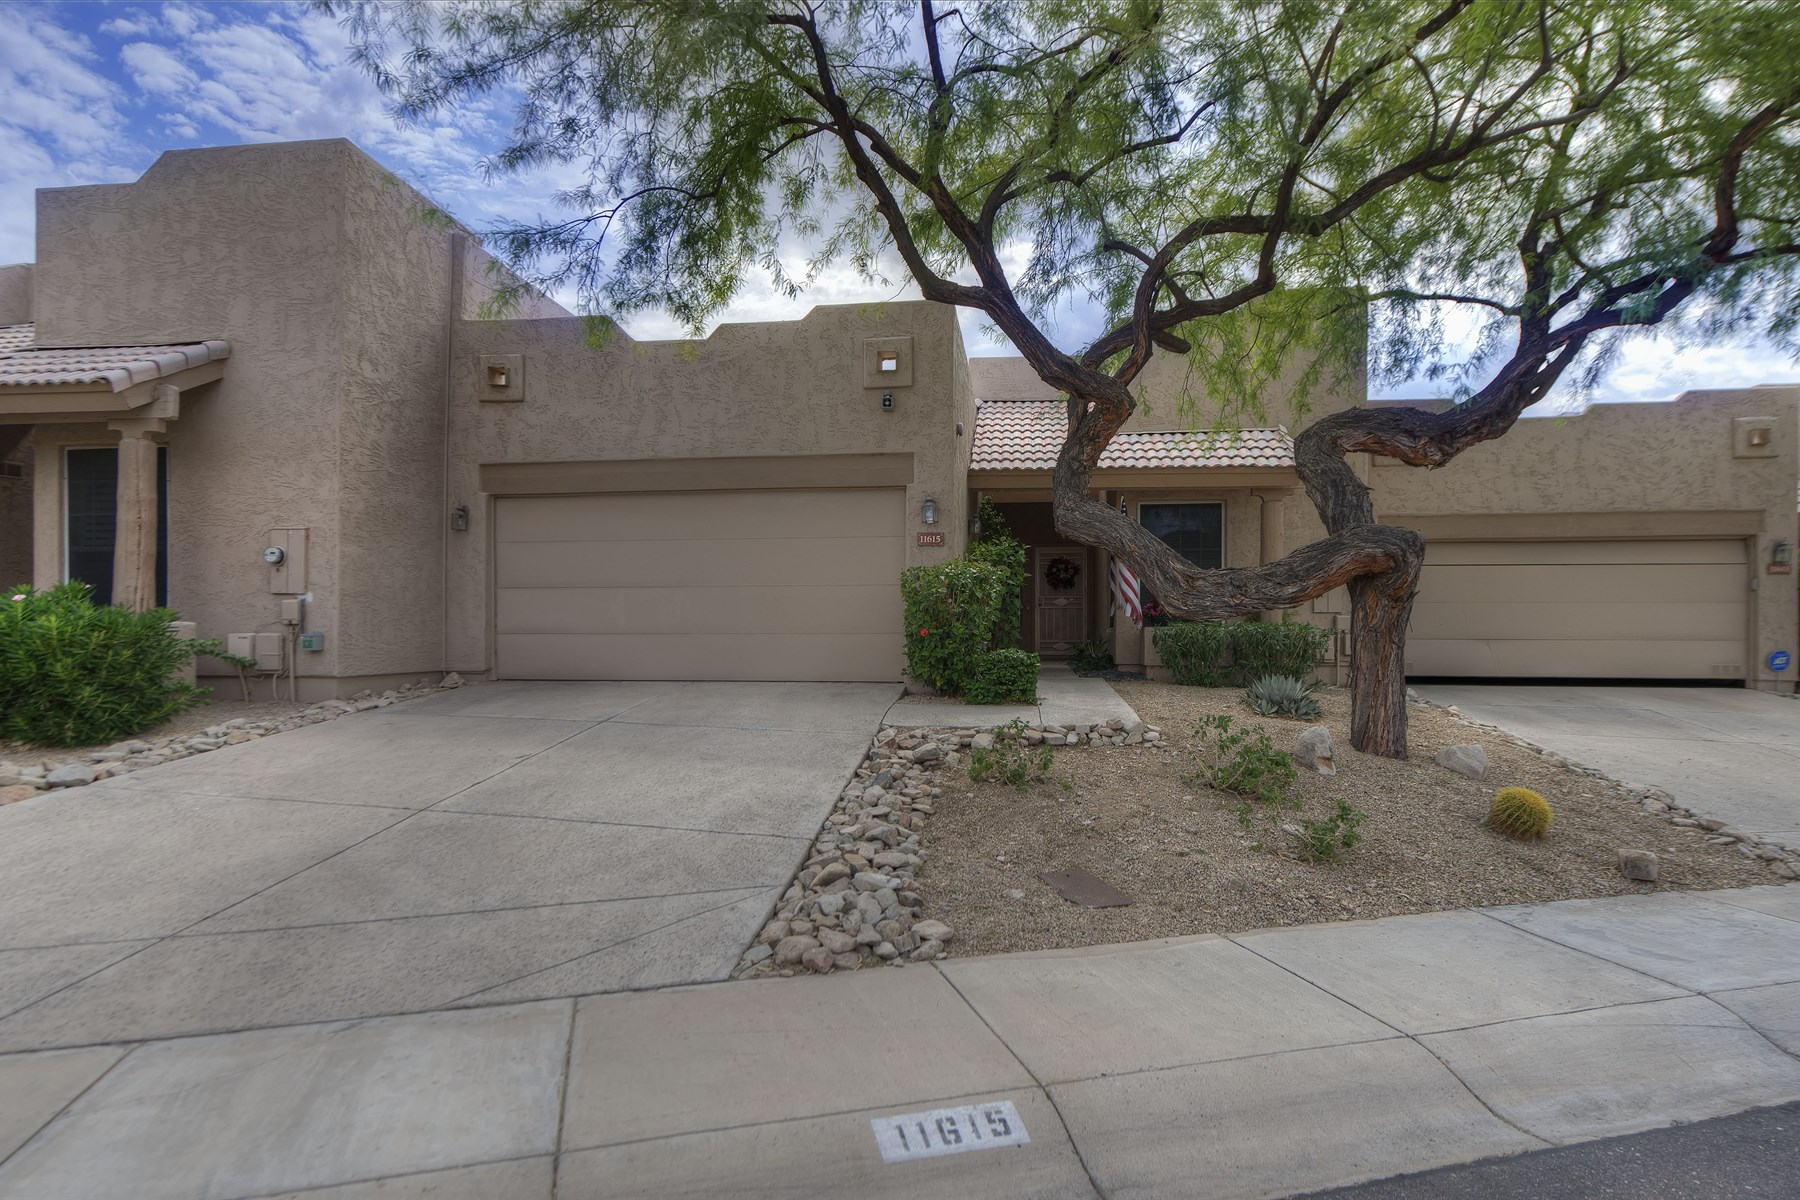 Townhouse for Sale at Wonderful patio home with three bedroom and two bath. 11615 N 114TH PL Scottsdale, Arizona 85259 United States